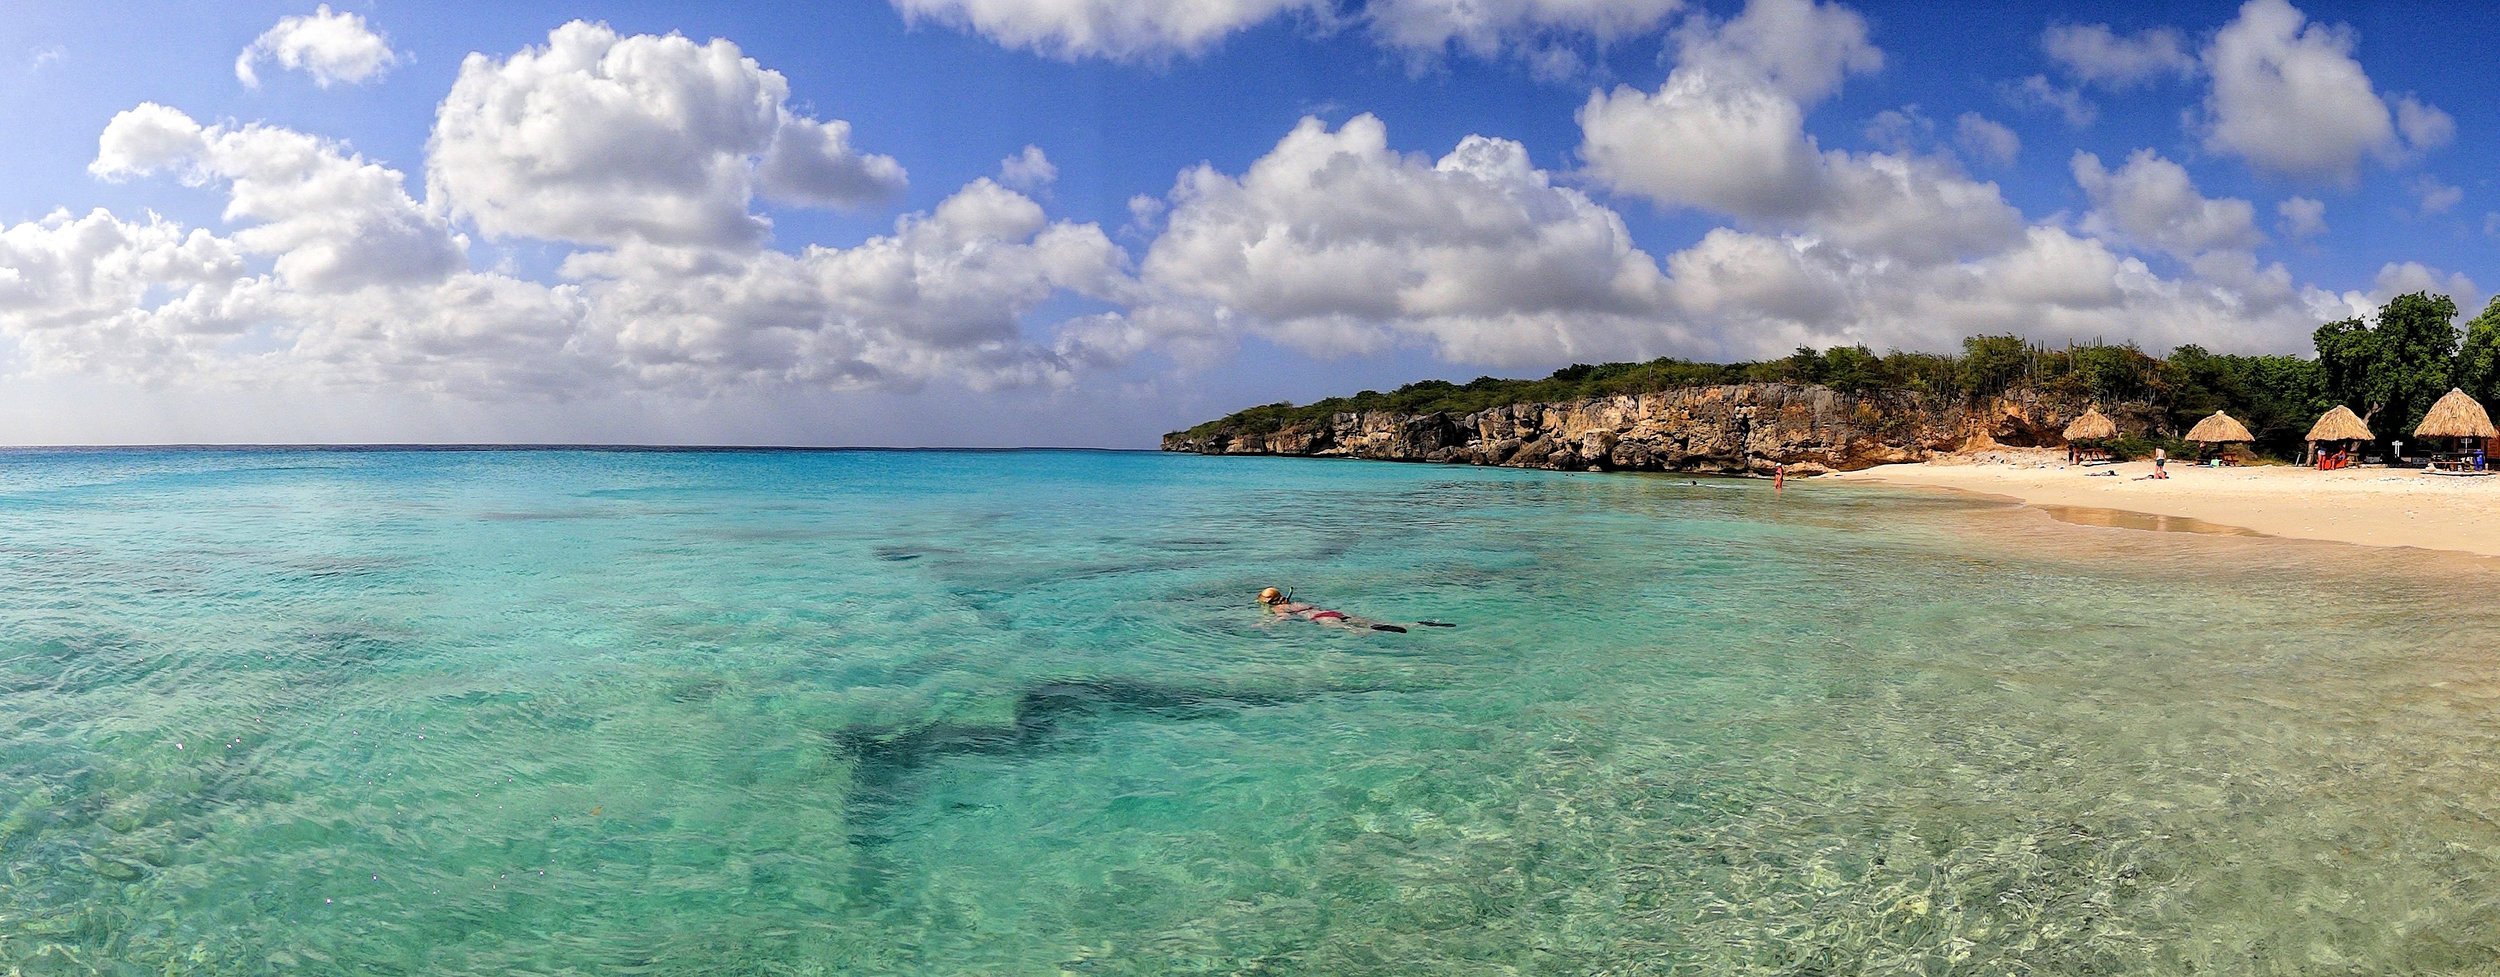 snorkeling at grote knip beach curacao